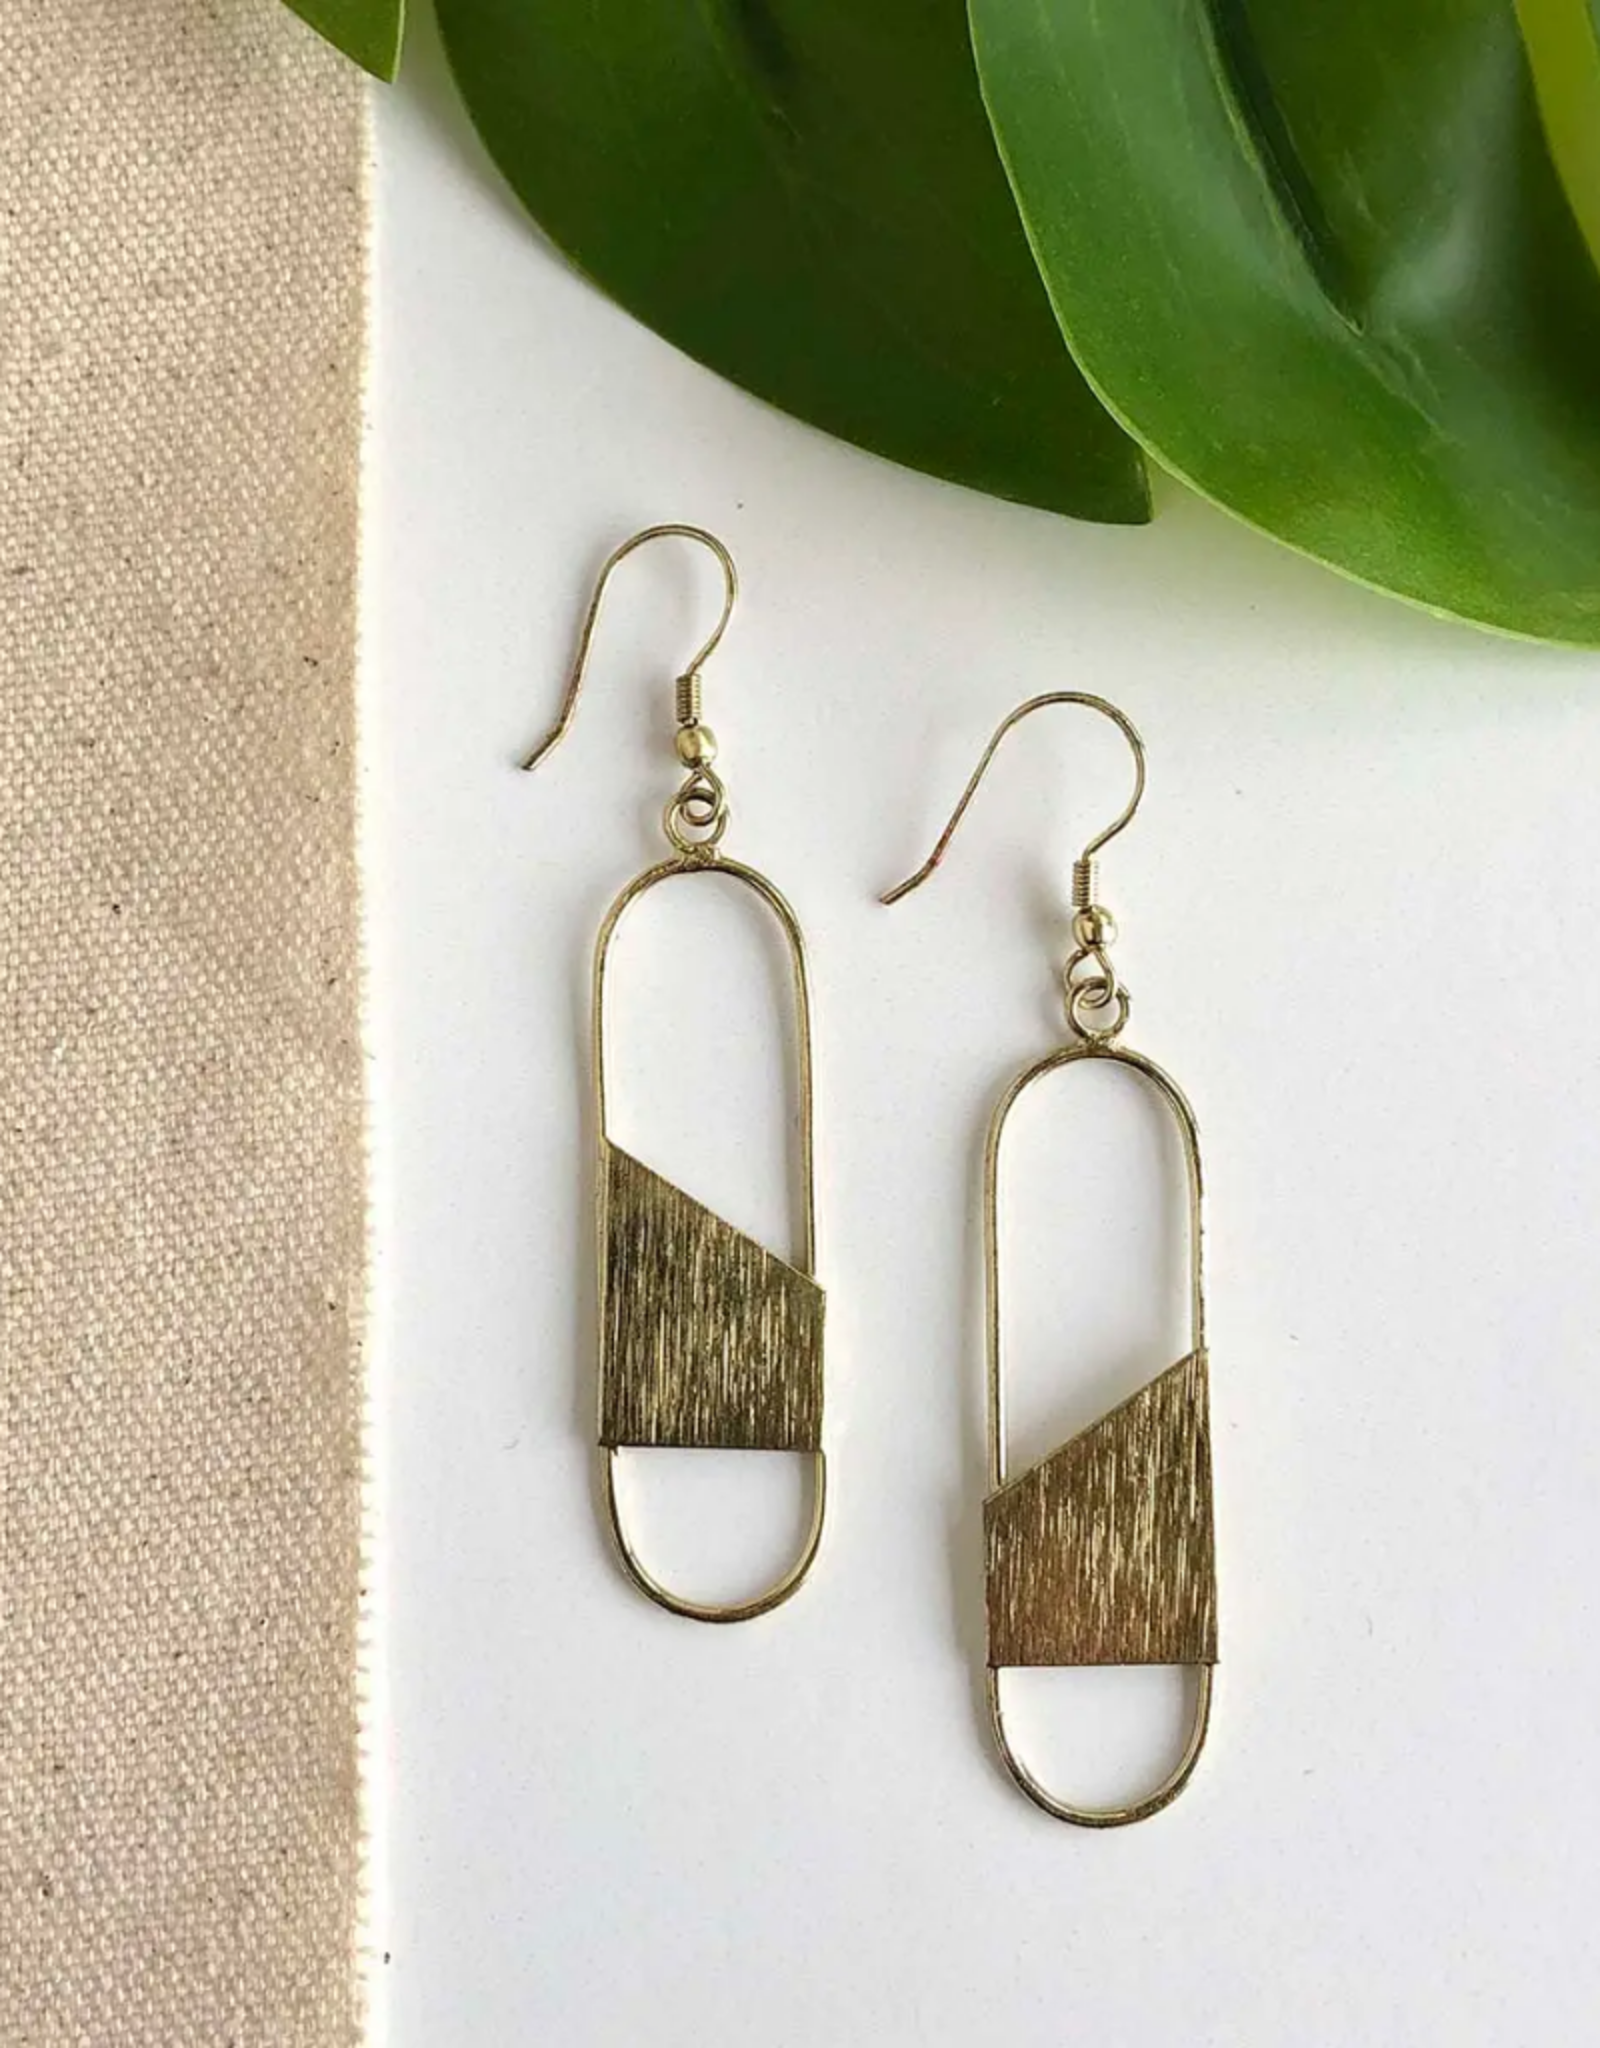 Faire/WorldFinds EARRINGS-ALAINA - GOLD